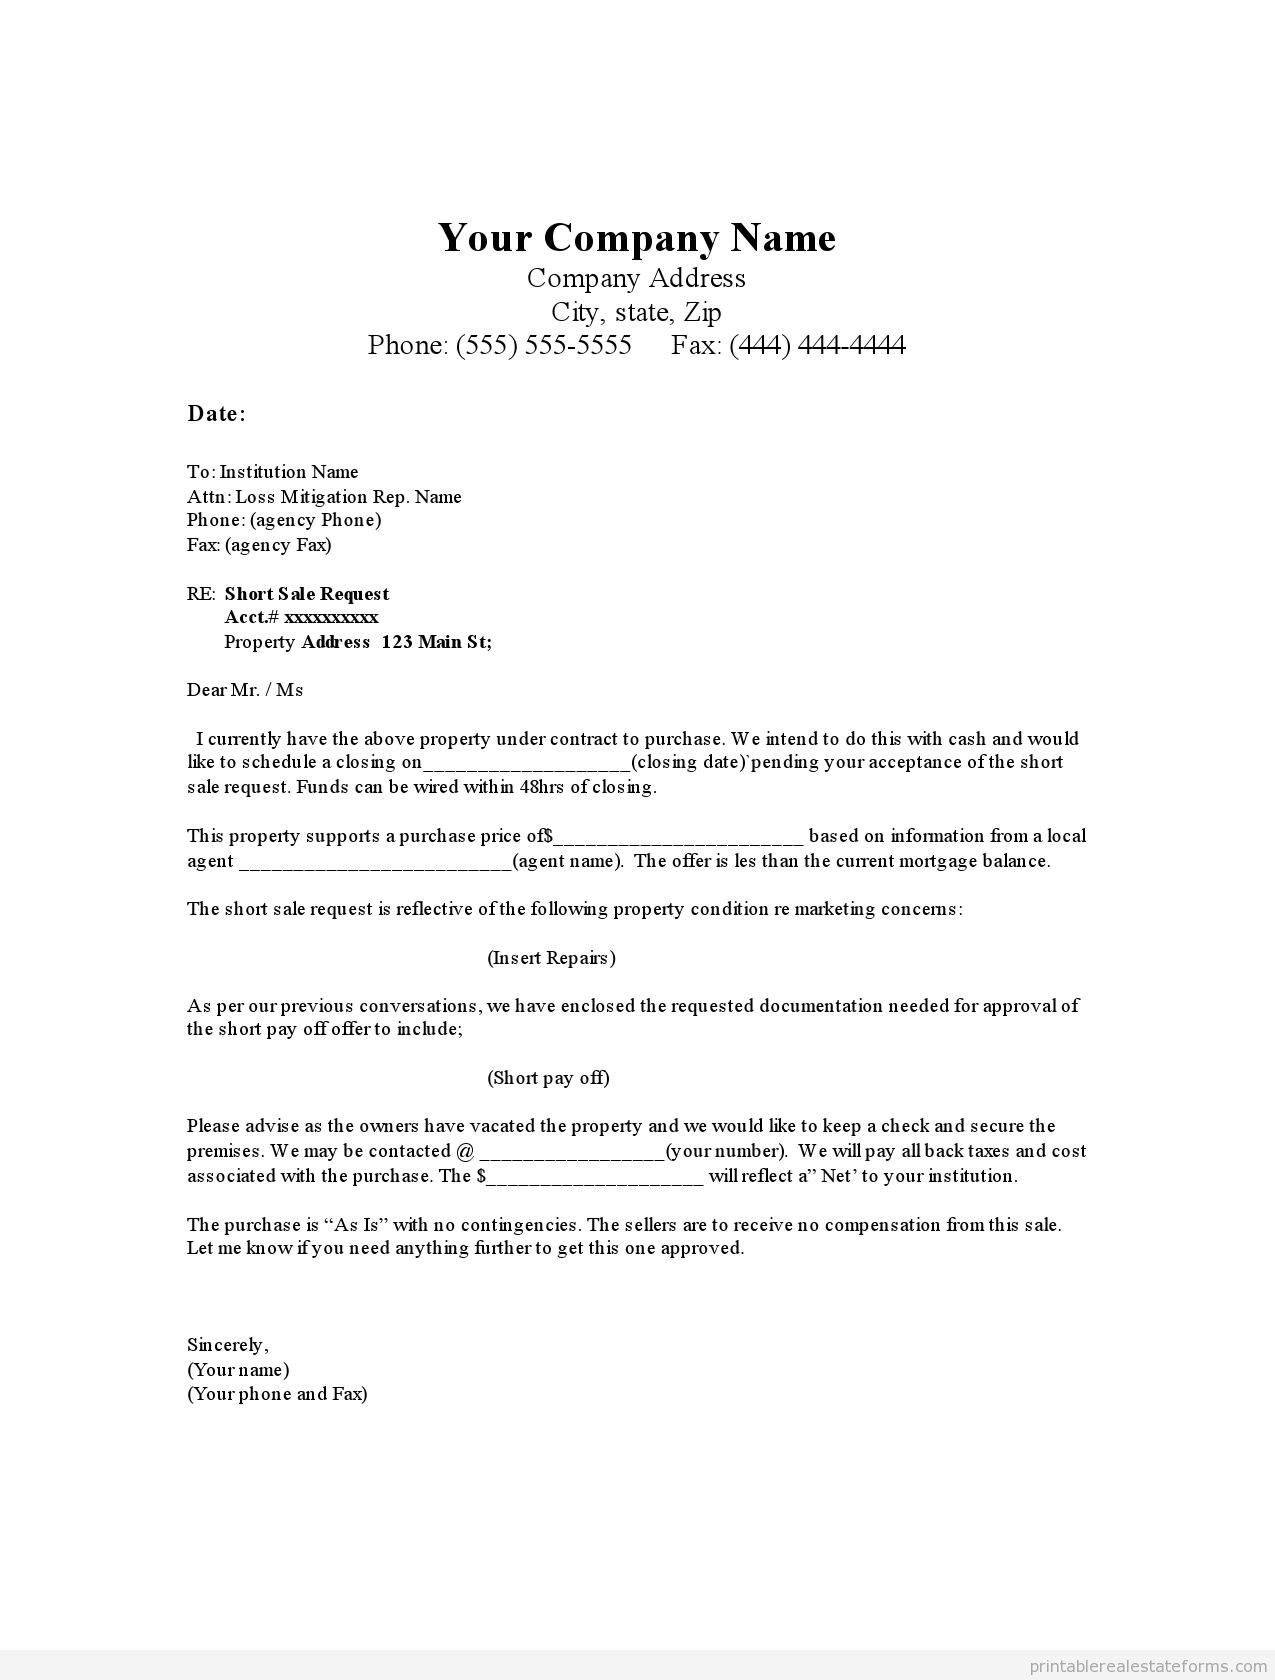 Offer to Purchase Letter Template - Home Fer Letter Template Home Fer Letter Sample Ideas